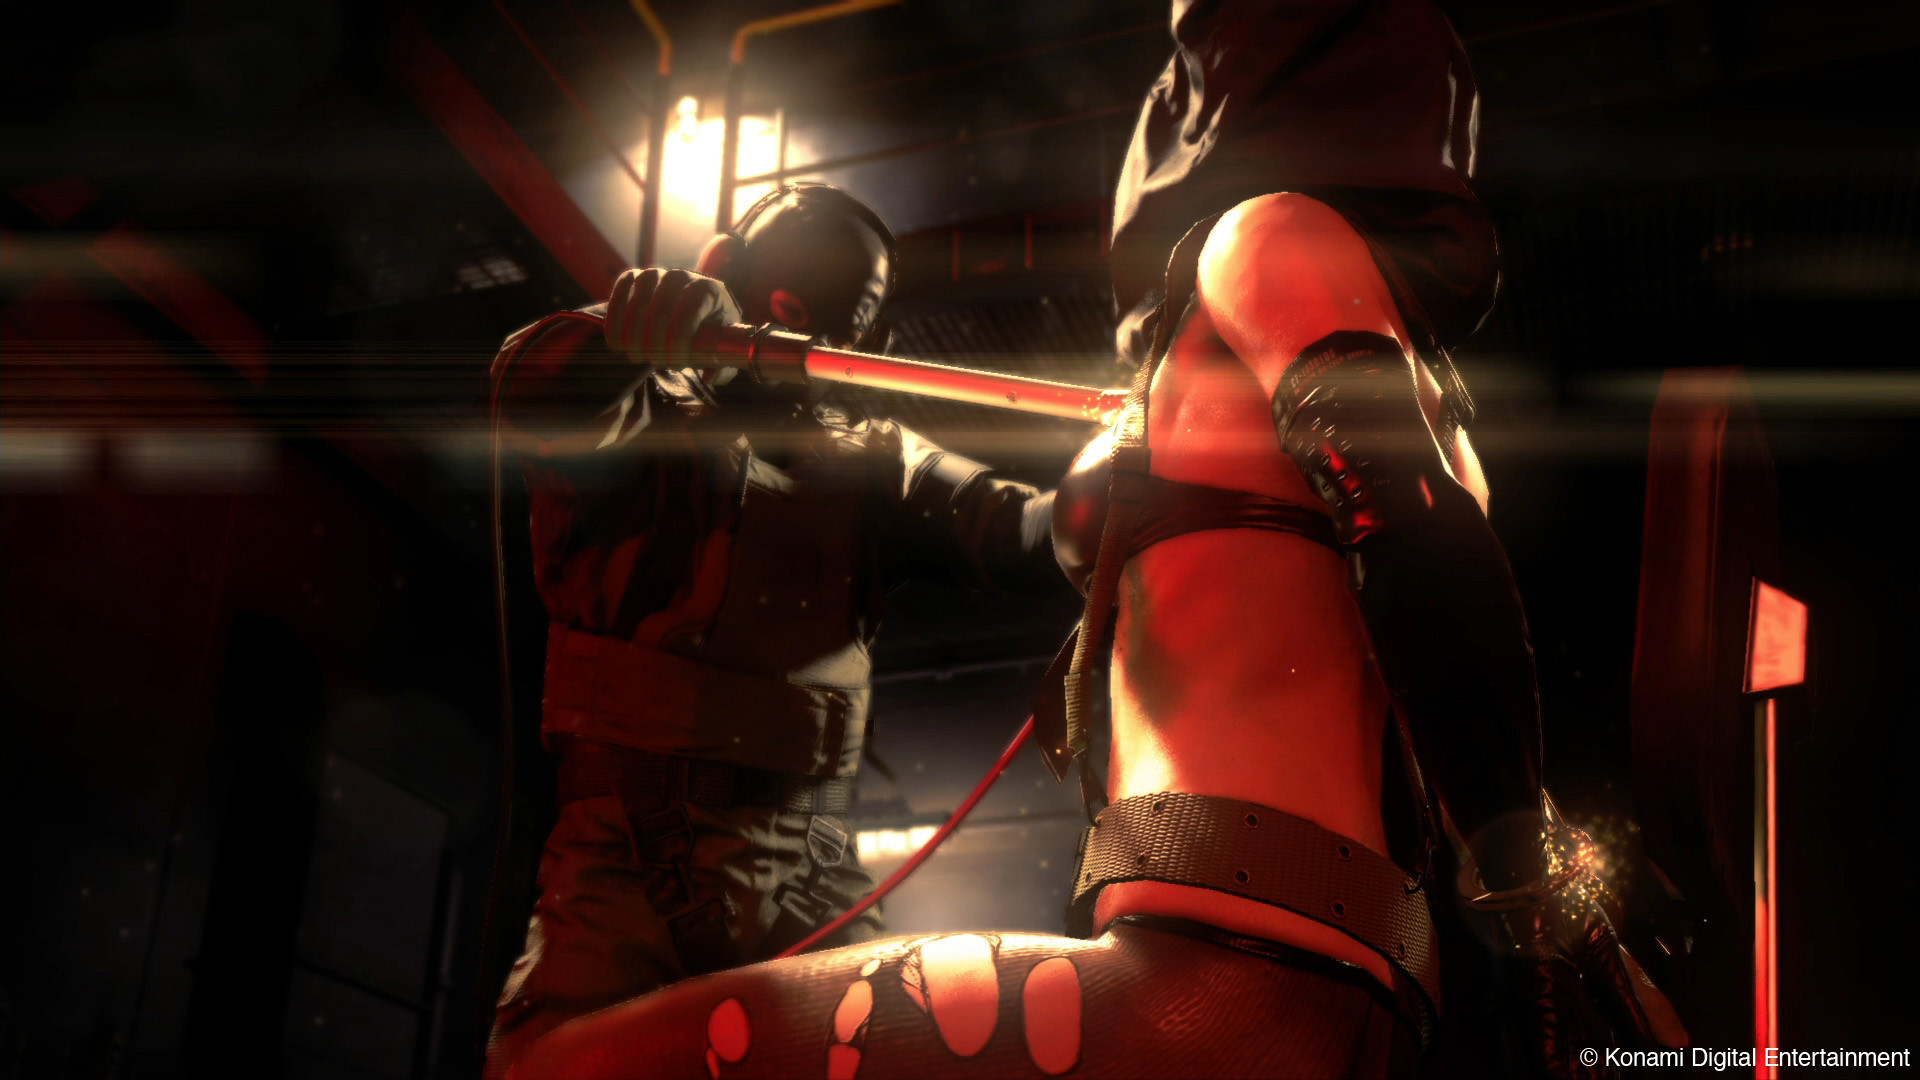 'Metal Gear Solid V' Sexism Controversy: All Smoke And No Fire?